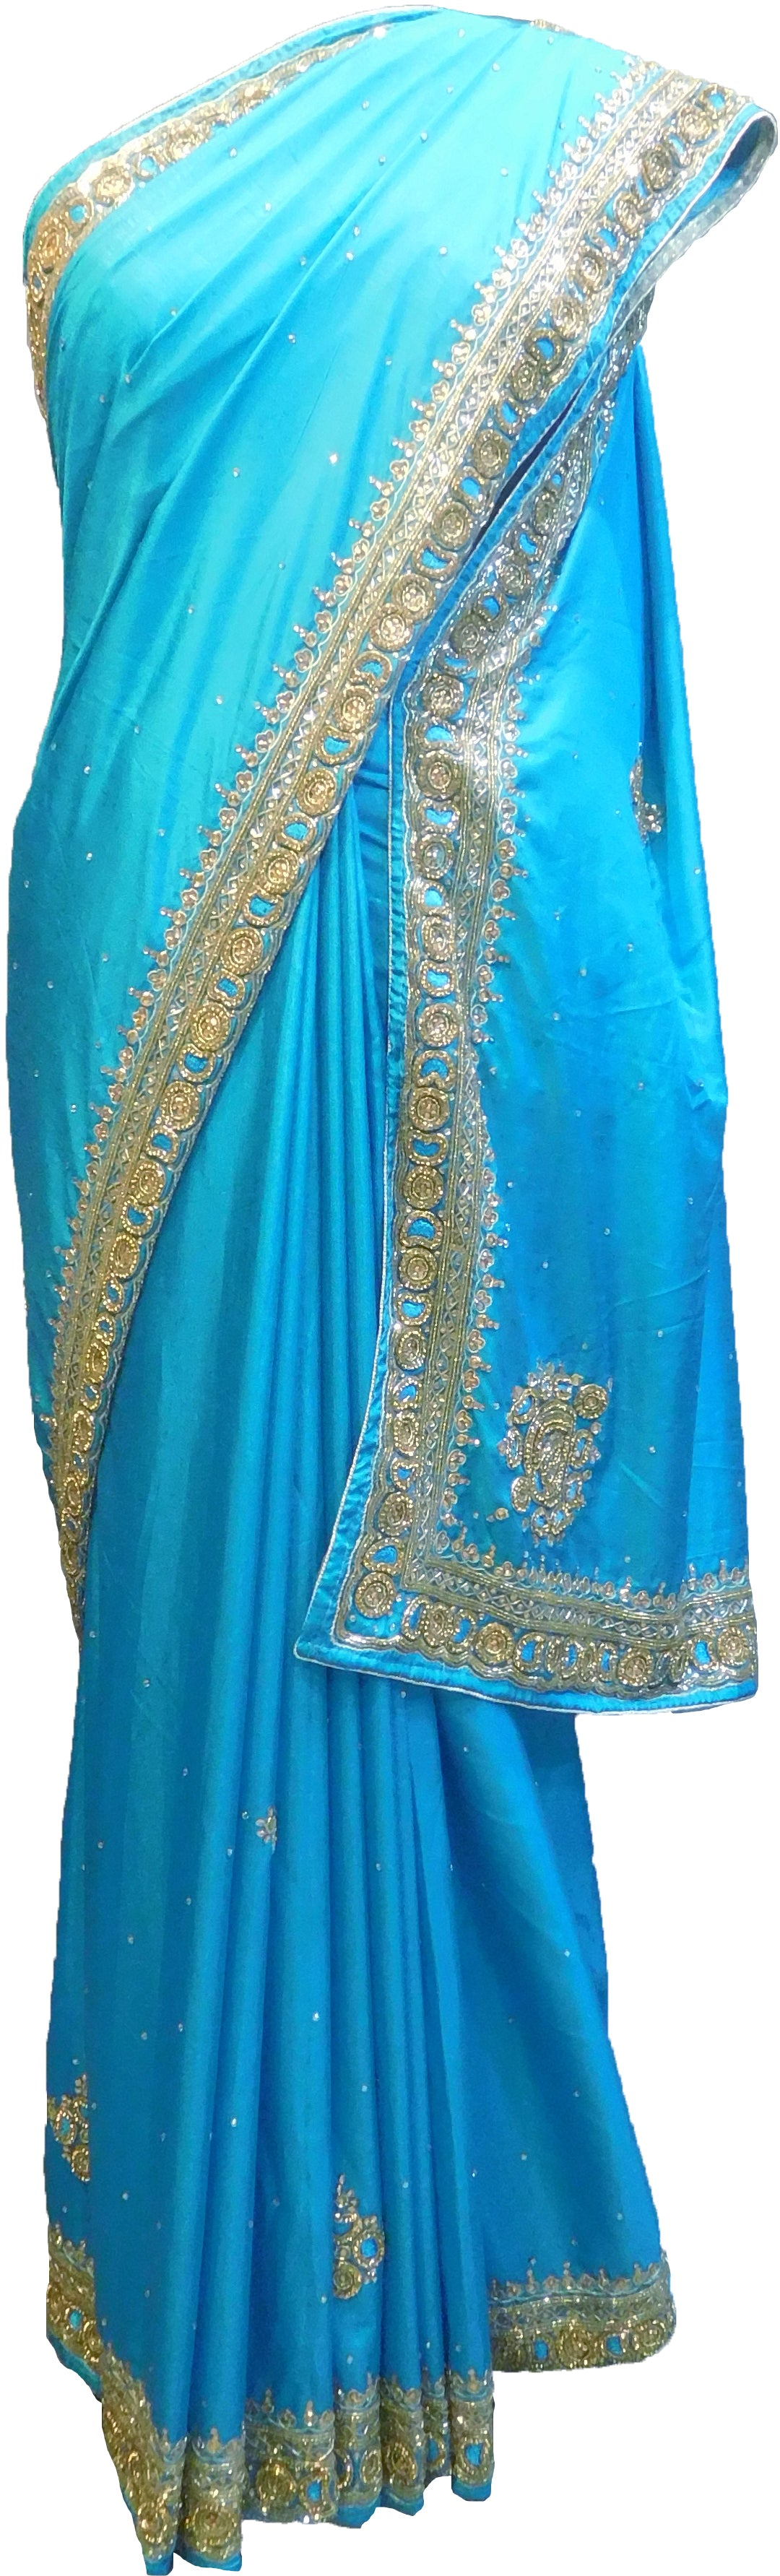 SMSAREE Turquoise Designer Wedding Partywear Silk Thread Stone & Cutdana Hand Embroidery Work Bridal Saree Sari With Blouse Piece F347